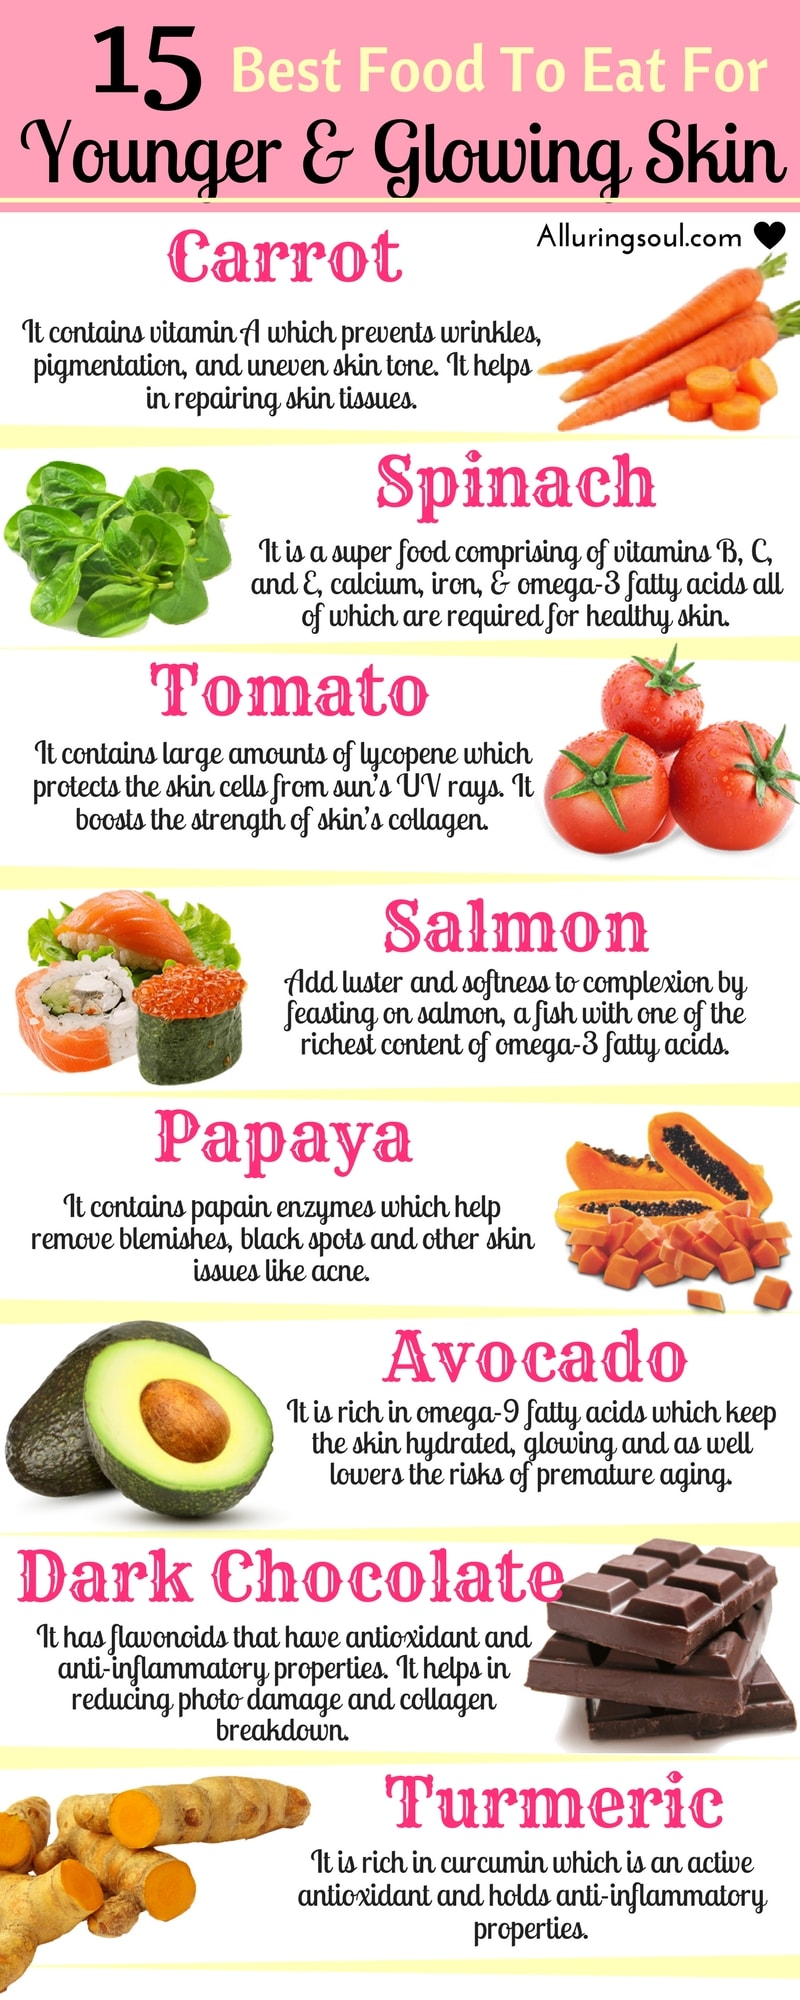 11 Best Foods For Younger And Glowing Skin  Alluring Soul